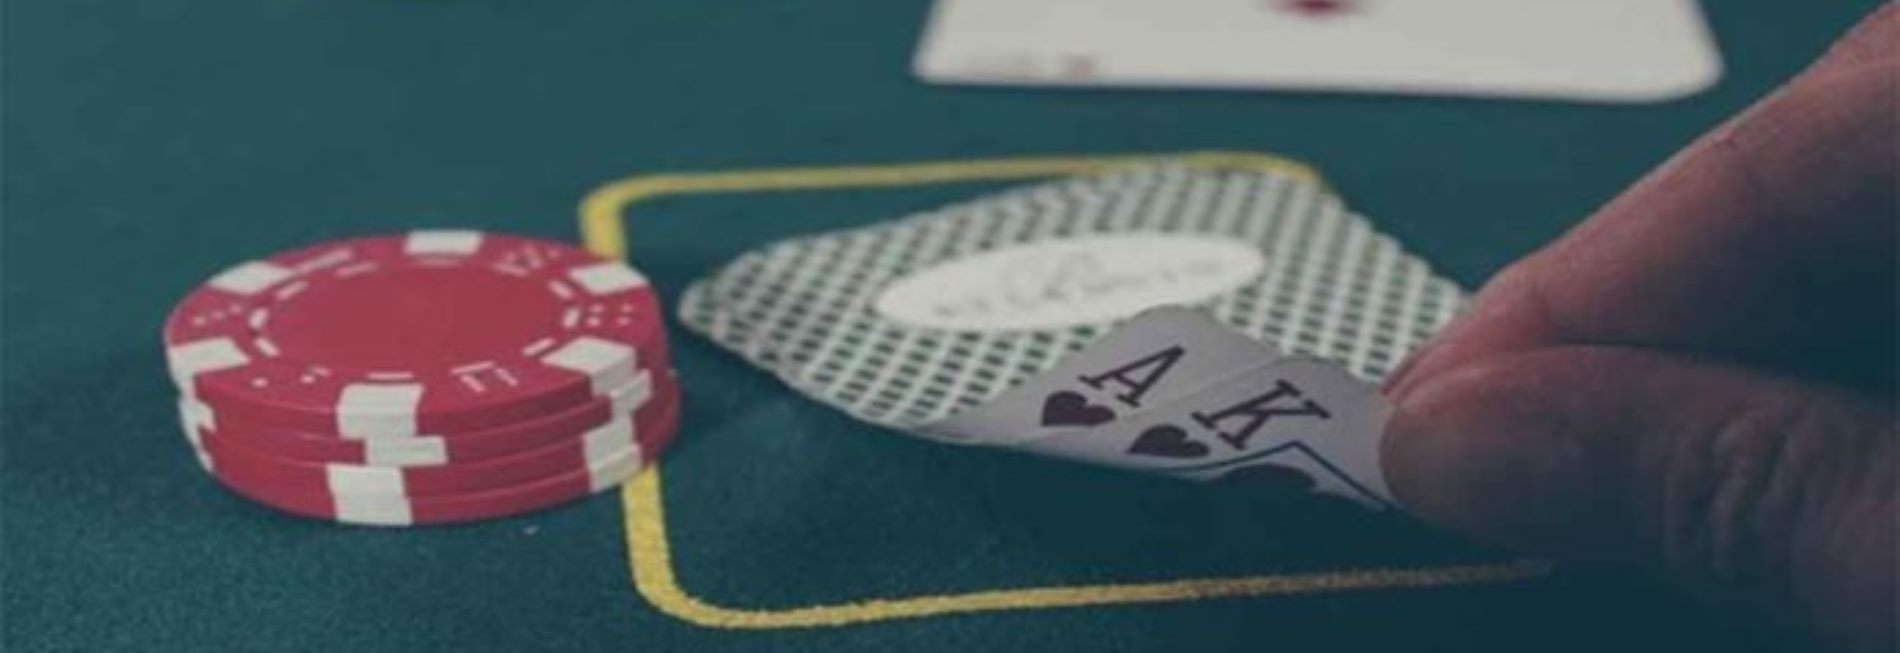 5 Tips for Improving Your Texas Hold'em Skills in 2021